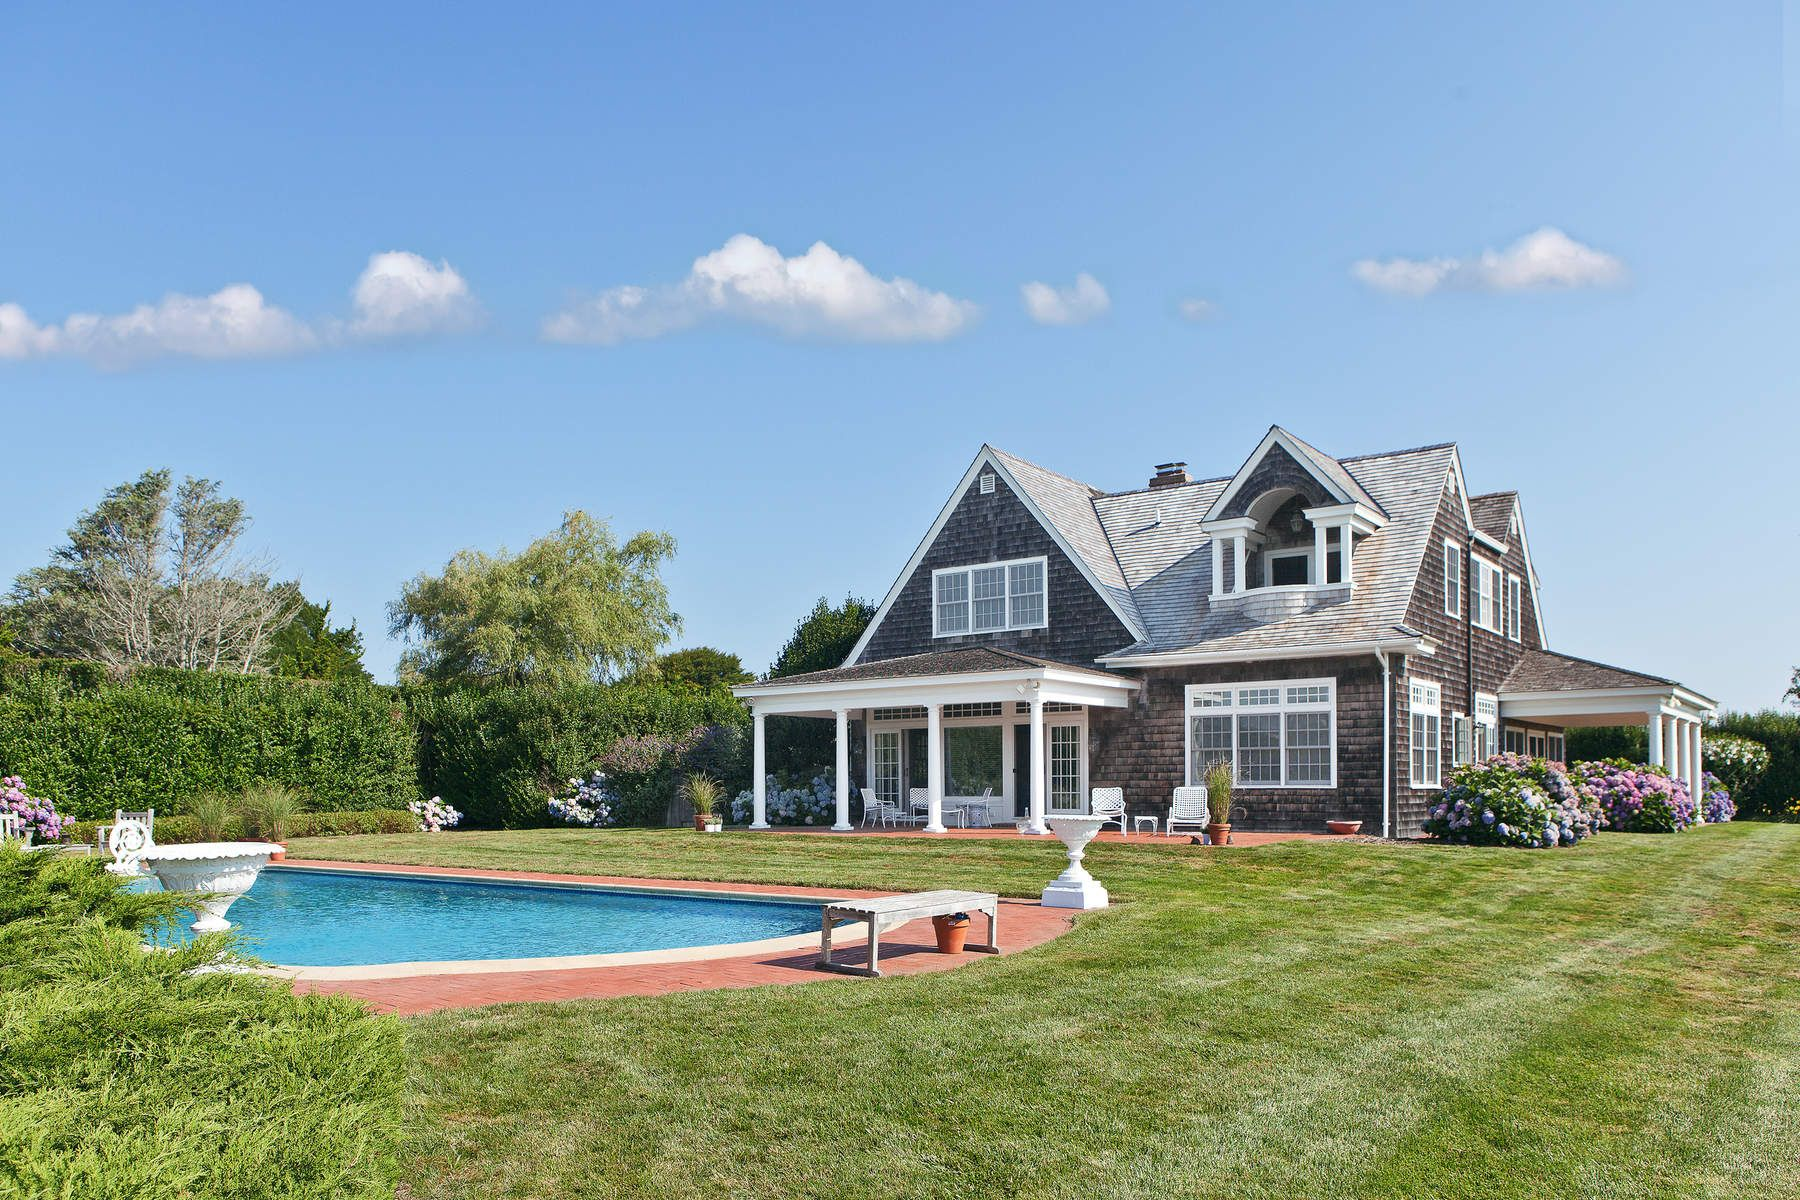 Single Family Home for Sale at Oceanview Carriage House 132 Apaquogue Road, East Hampton, New York, 11937 United States